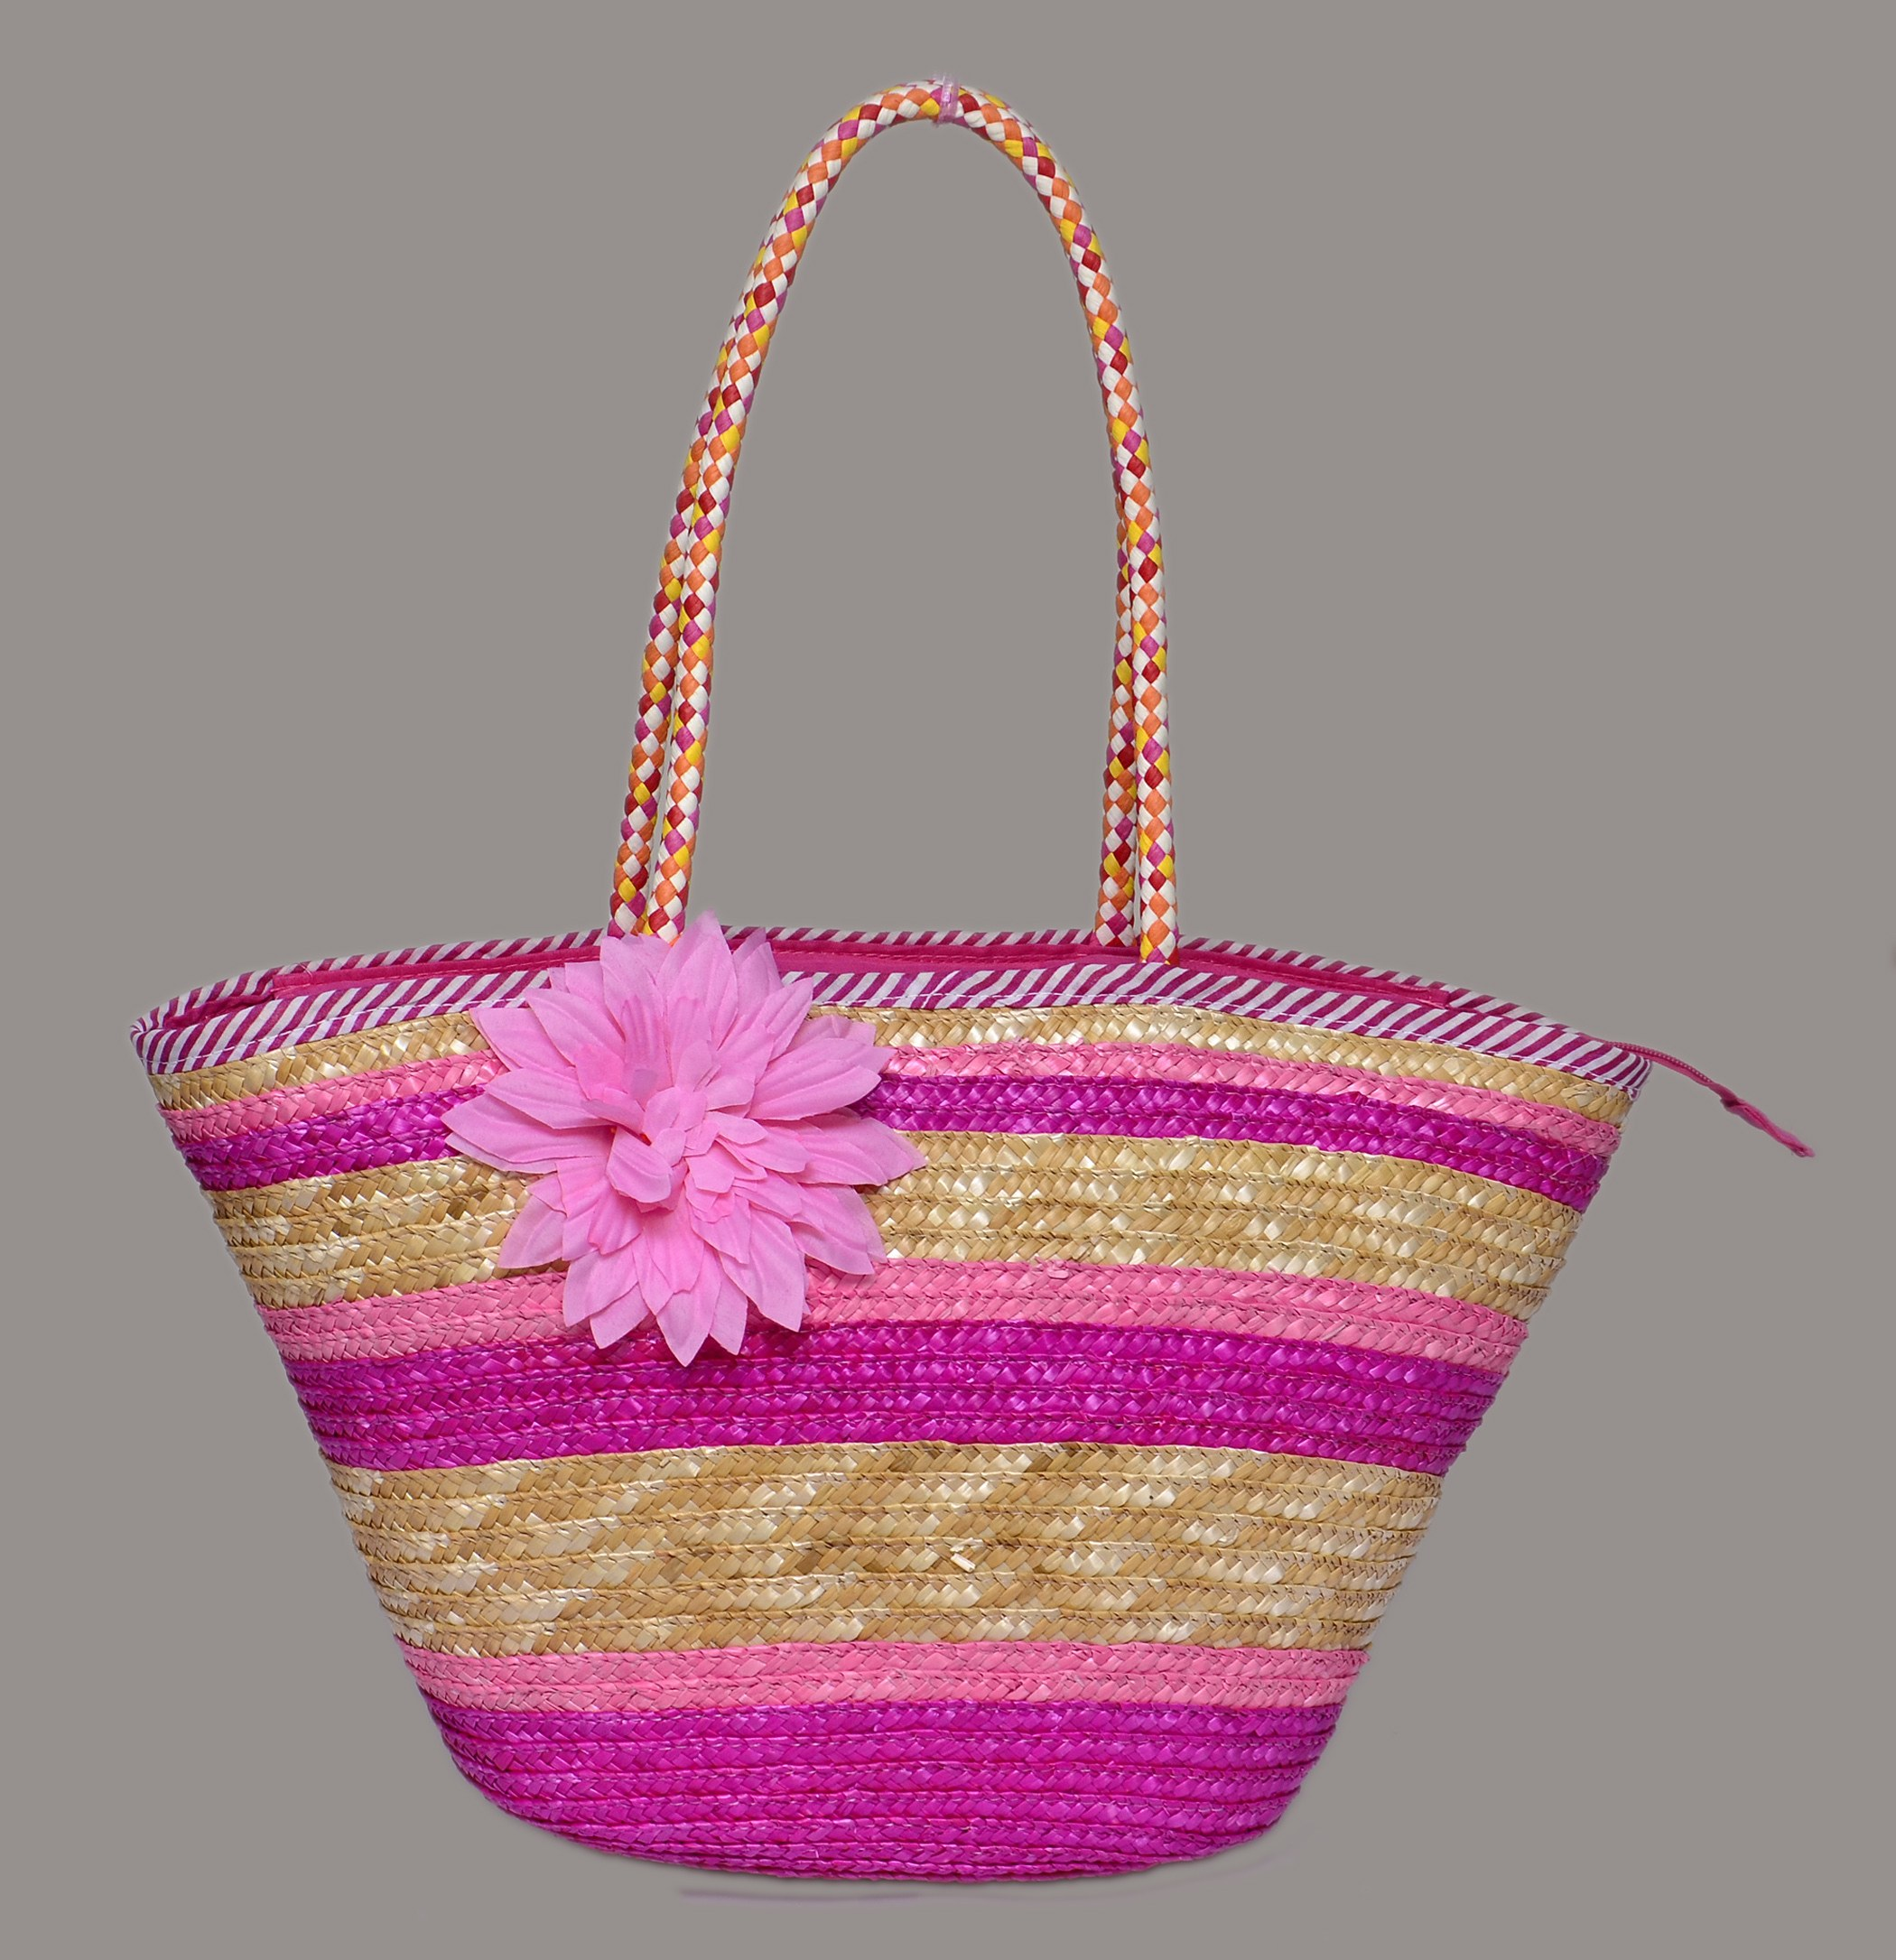 Cane Baskets Gorgeous Multi Colour Cane Baskets With Flower Pink